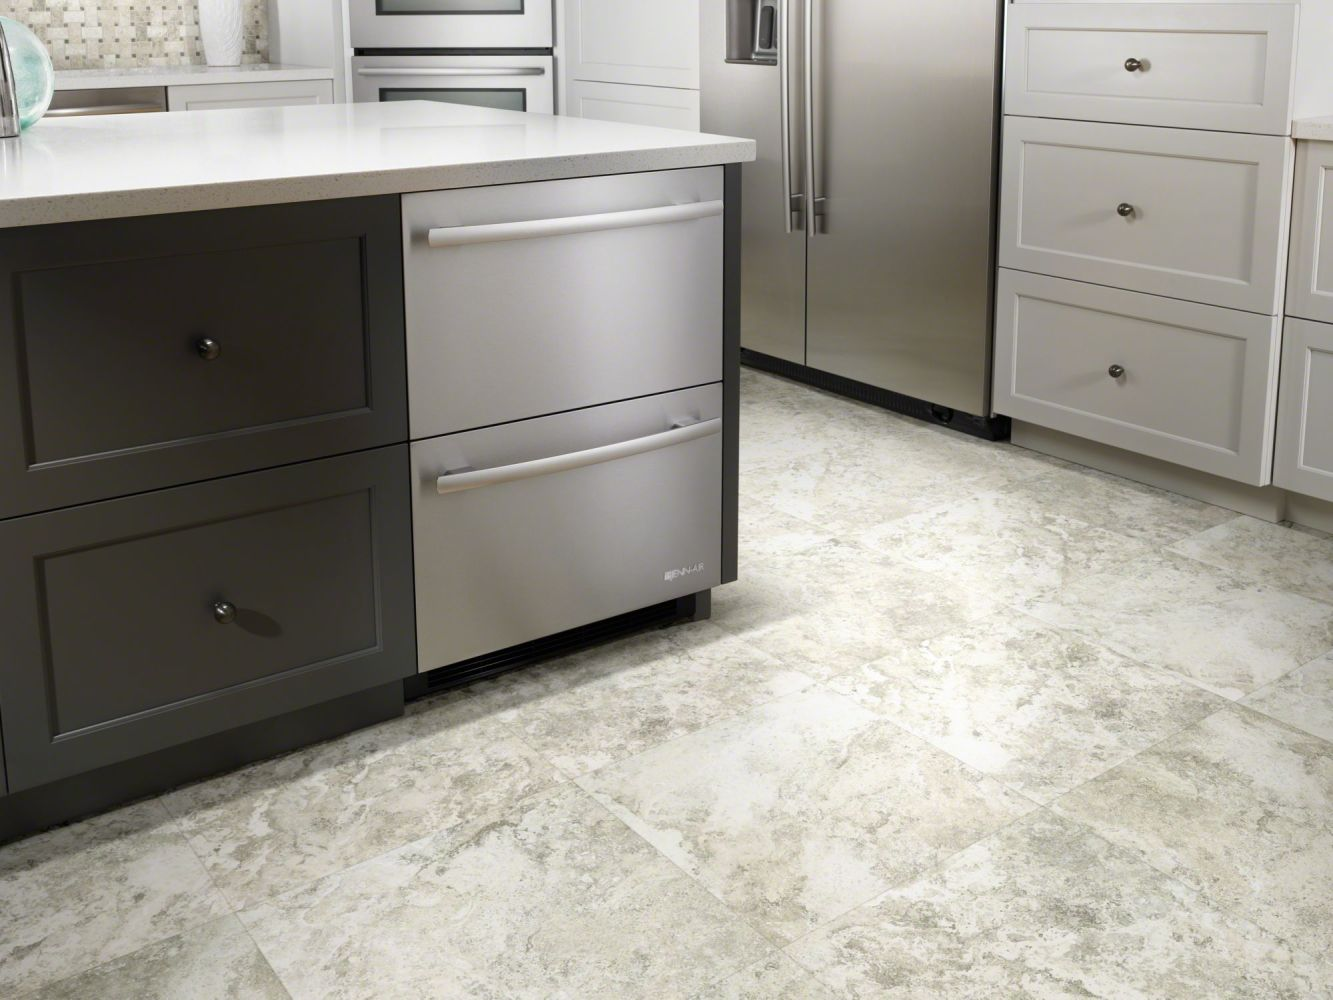 Shaw Floors Vinyl Residential World's Fair Tile Boston 00104_0428V